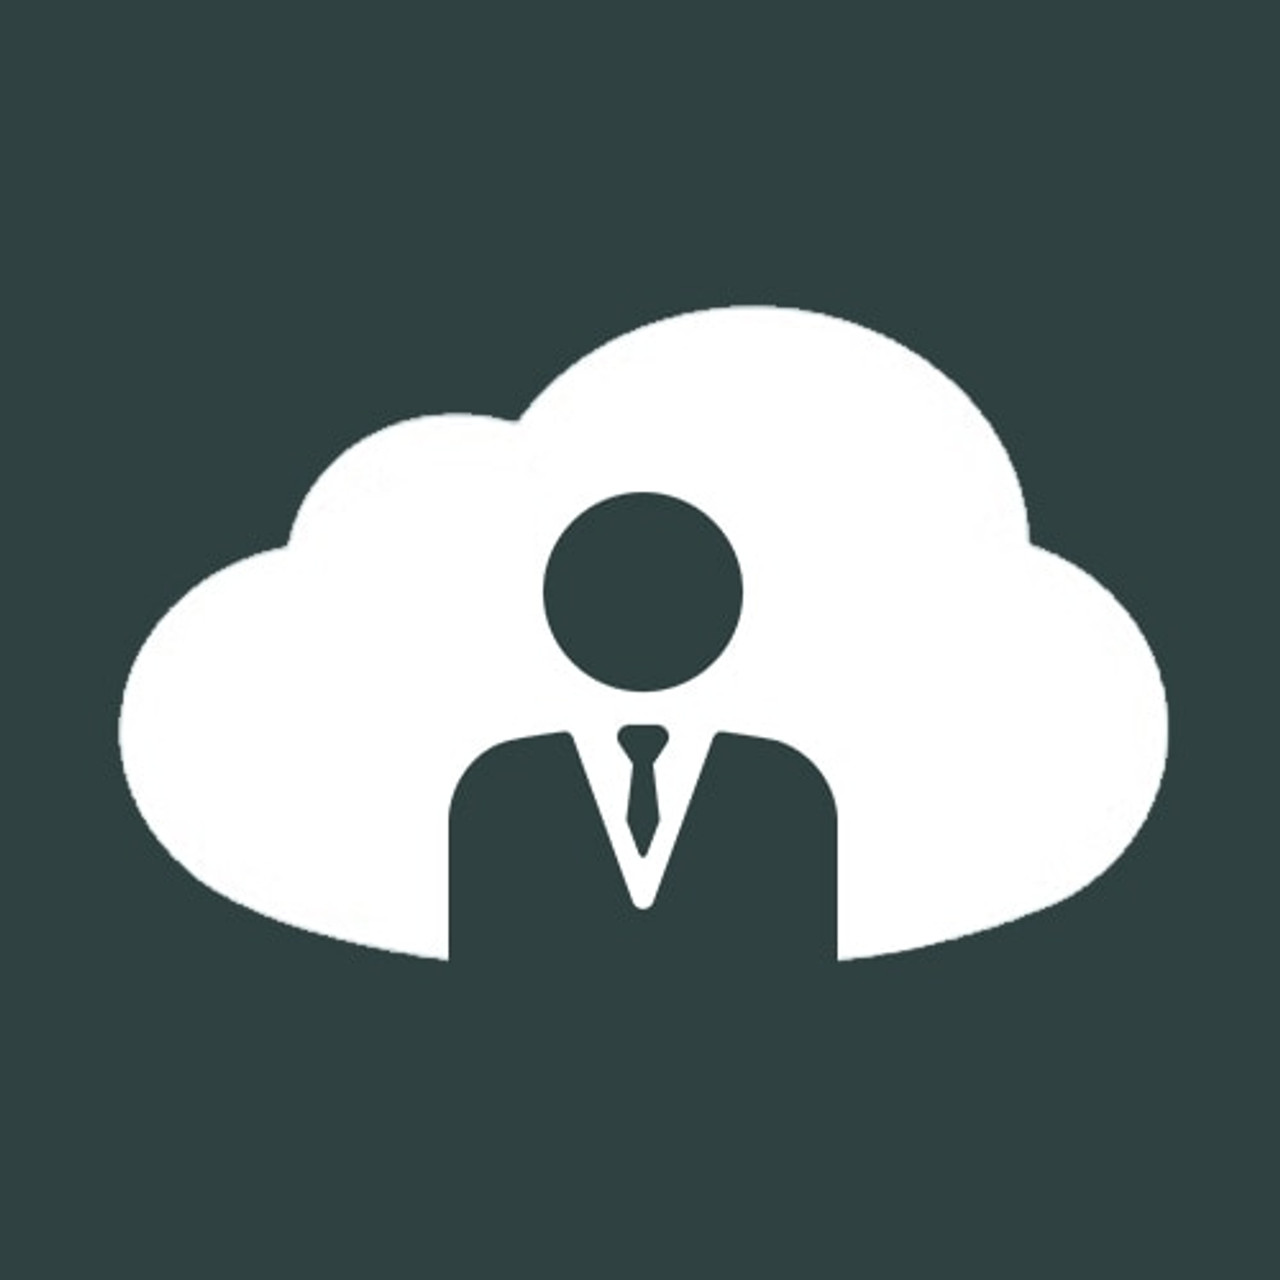 FortiGate-61E - FortiCloud Management, Analysis and 1 Year Log Retention -  12 months